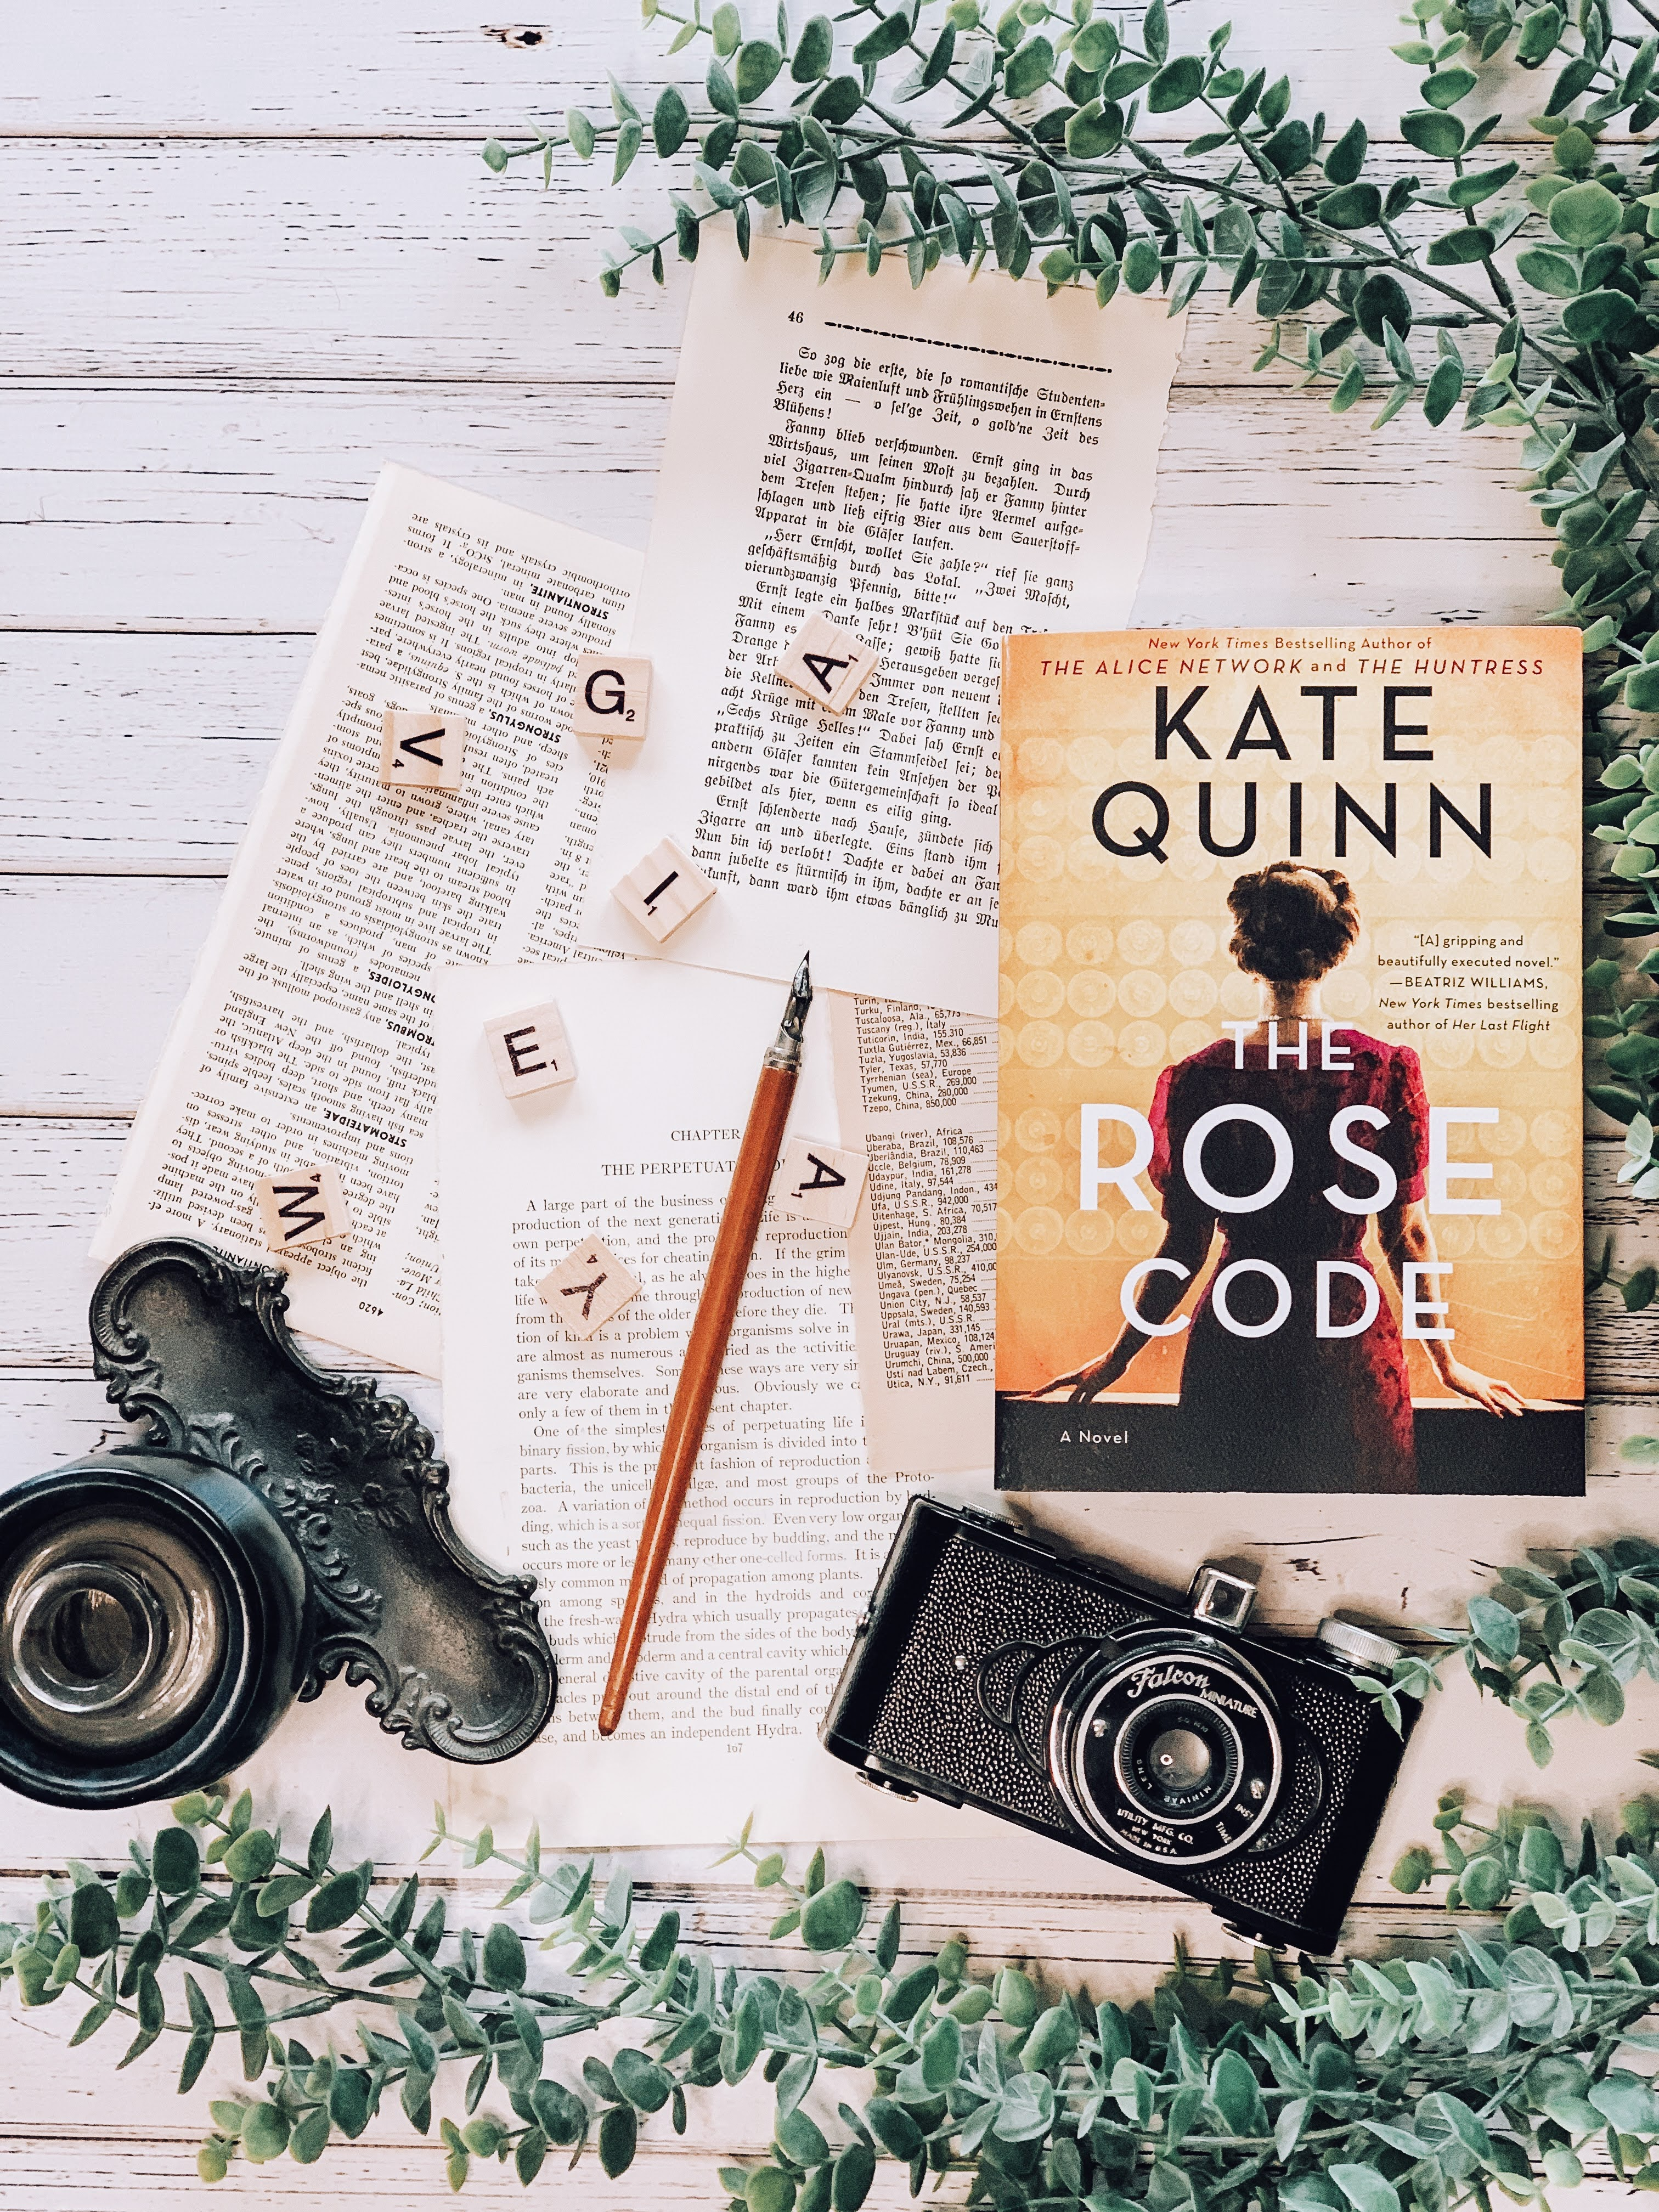 Virtual Reading Cafe Book Club: The Rose Code by Kate Quinn